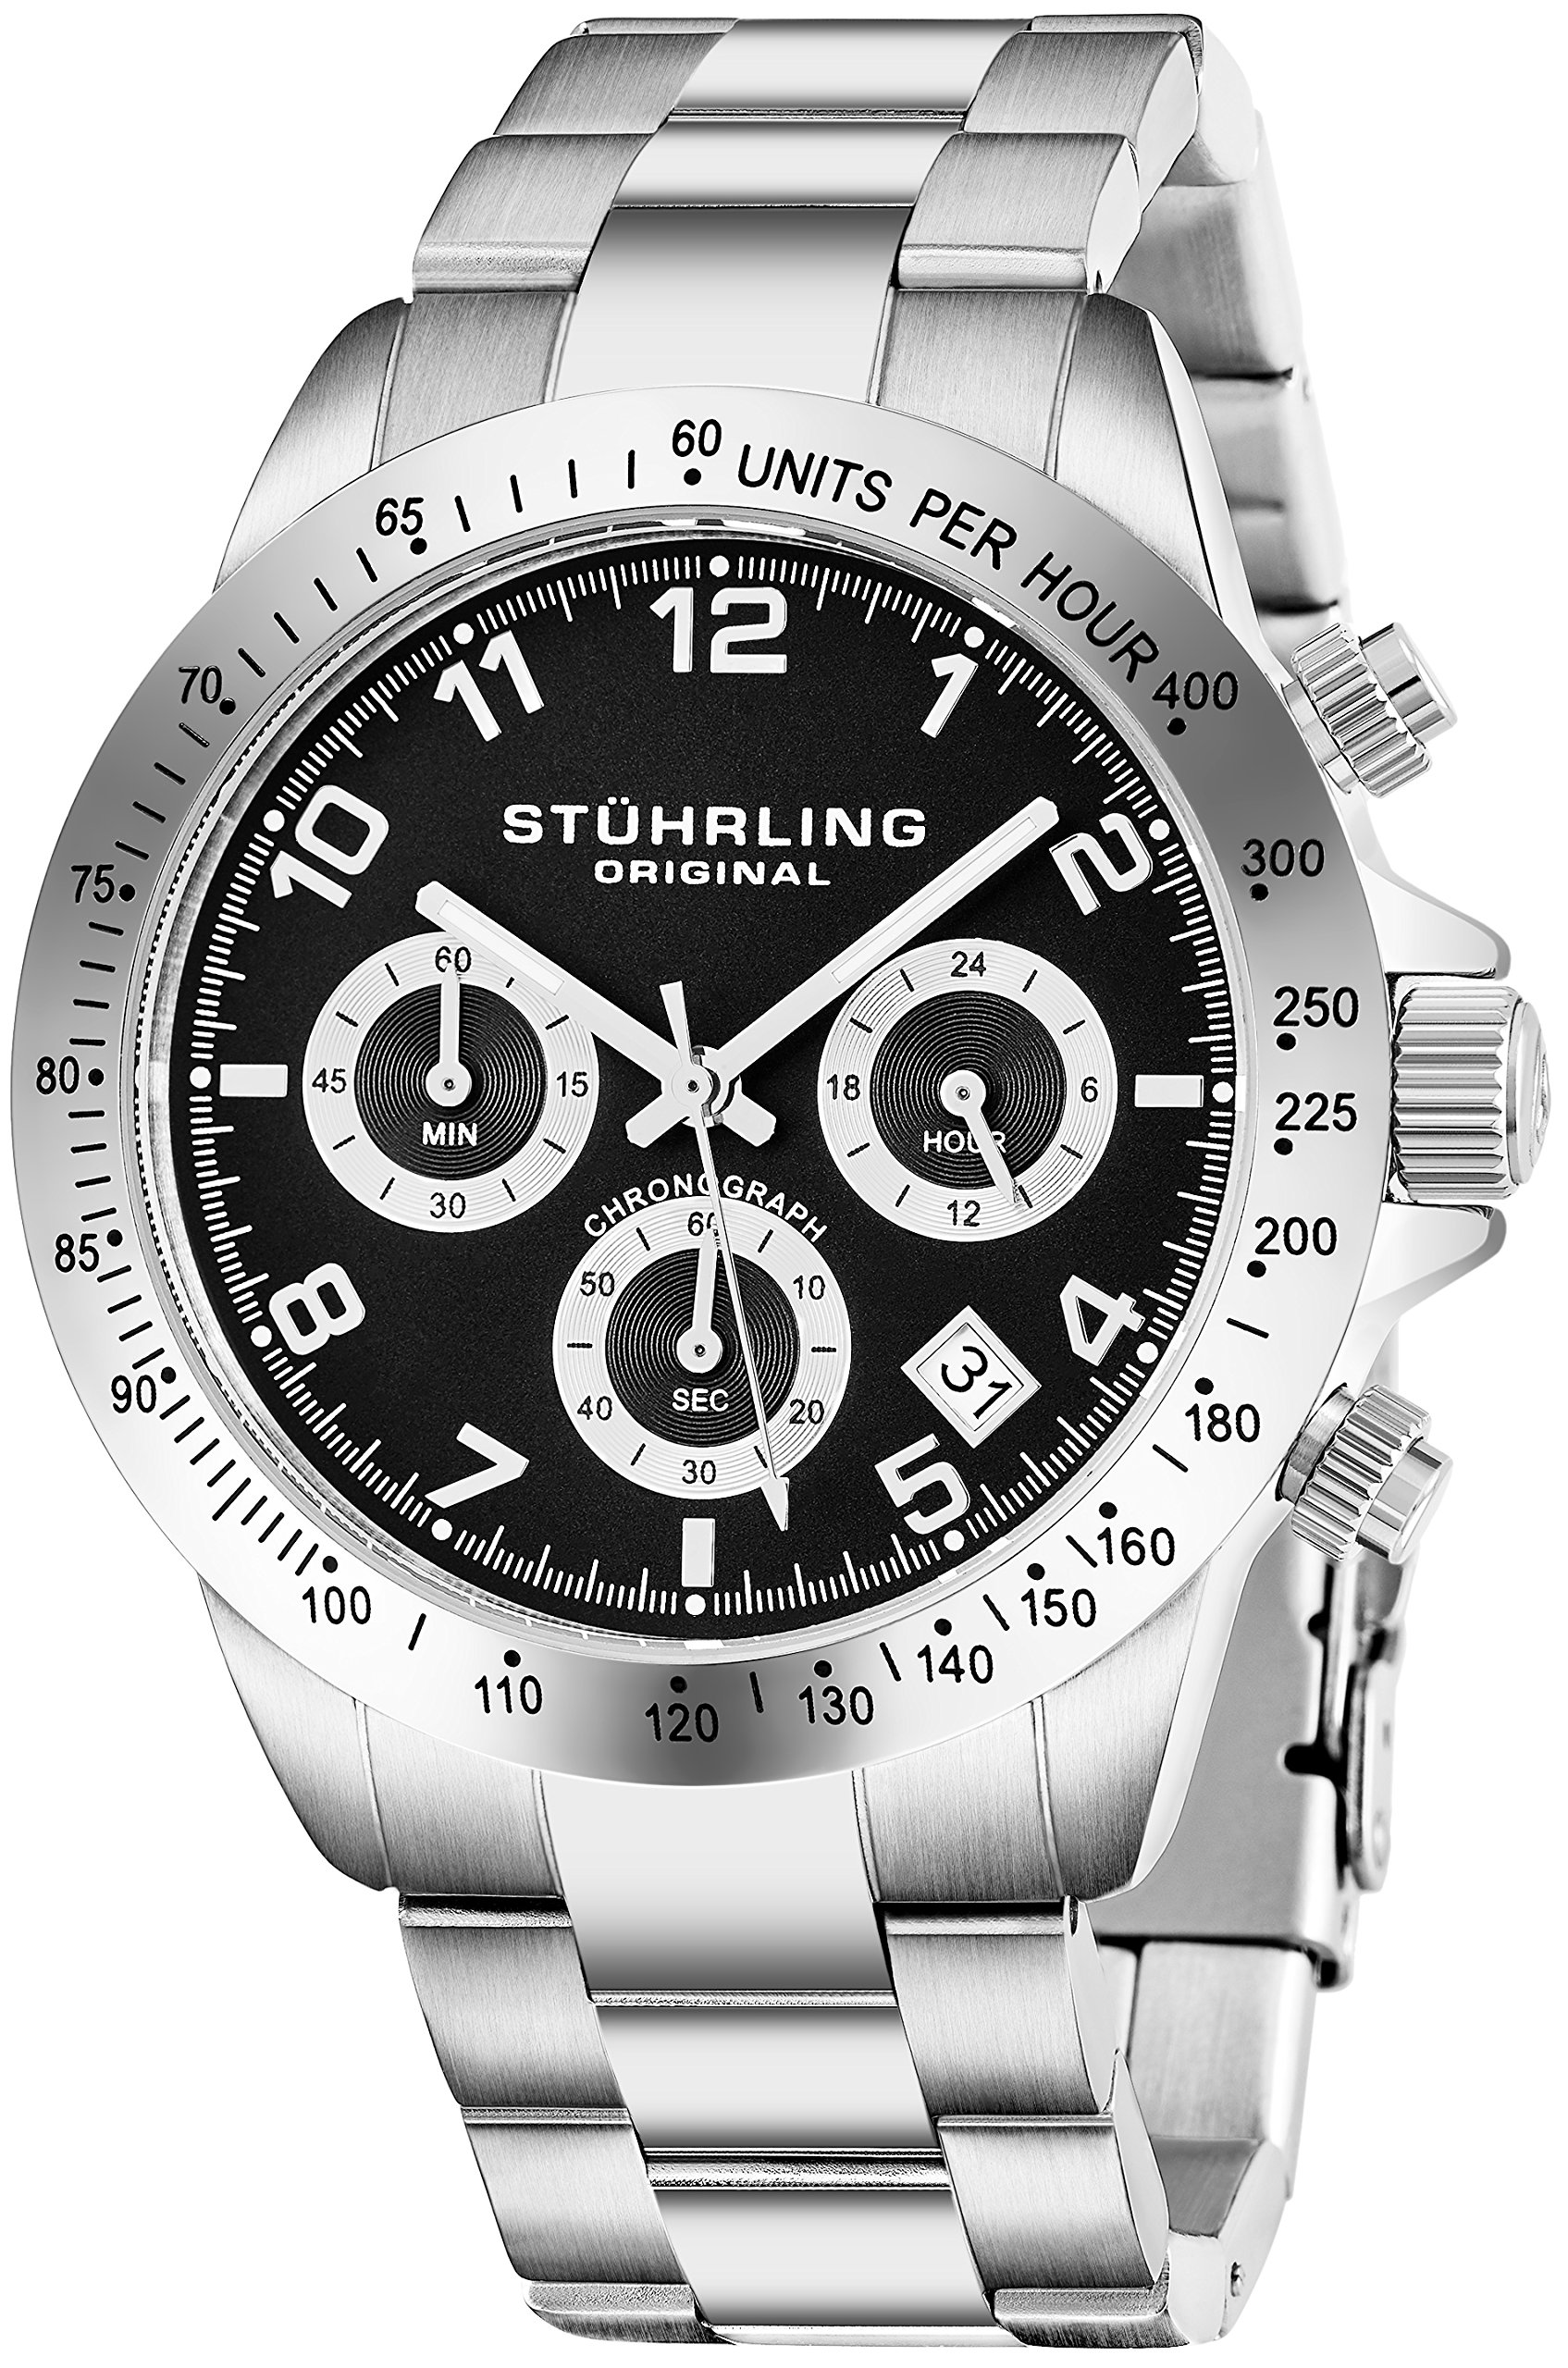 033f40446 Get Quotations · Quartz Chronograph Mens Watch by Stuhrling Original with  Black, Blue or Silver Dial. Solid